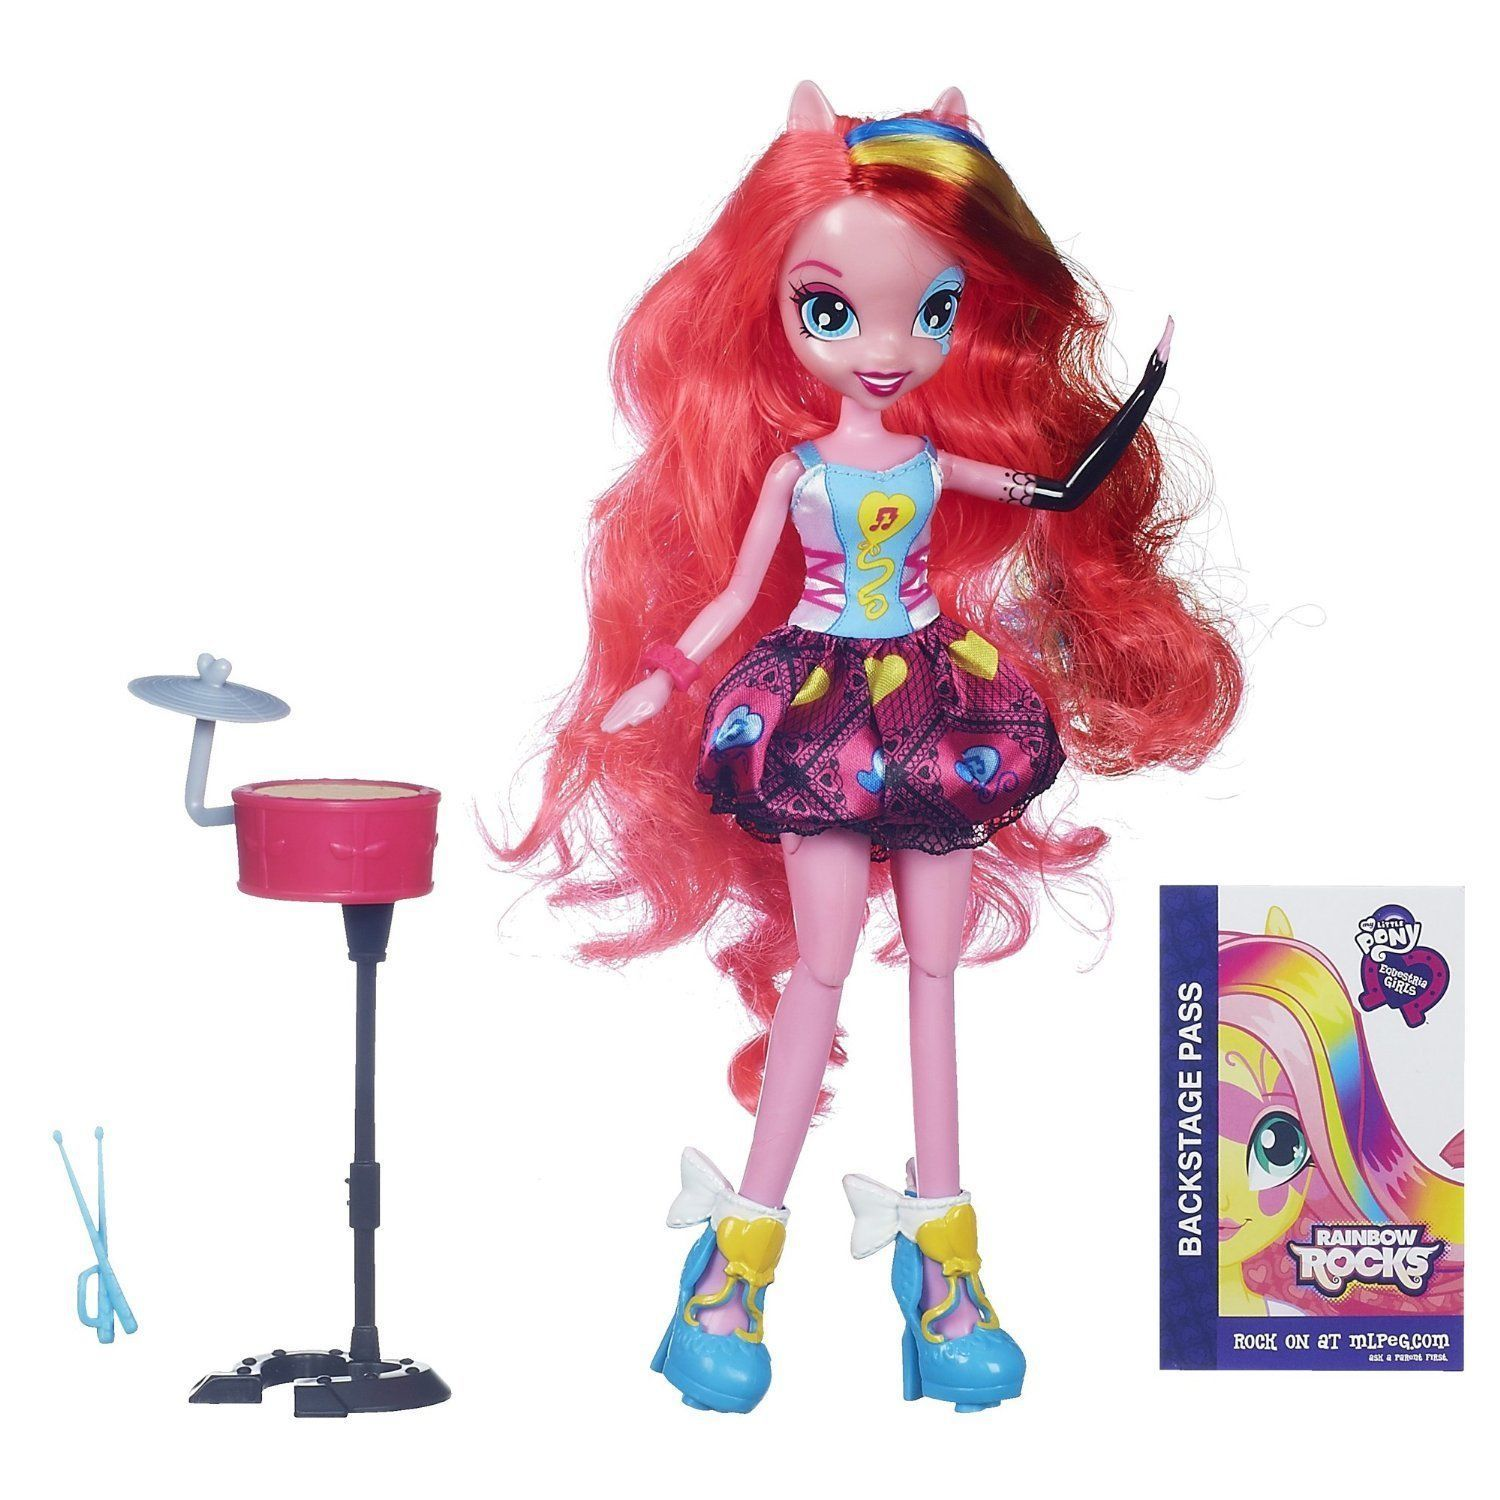 My Little Pony Equestria Girls Pinkie Pie Doll Rocks & Sings w/Drums 6+ Hasbro